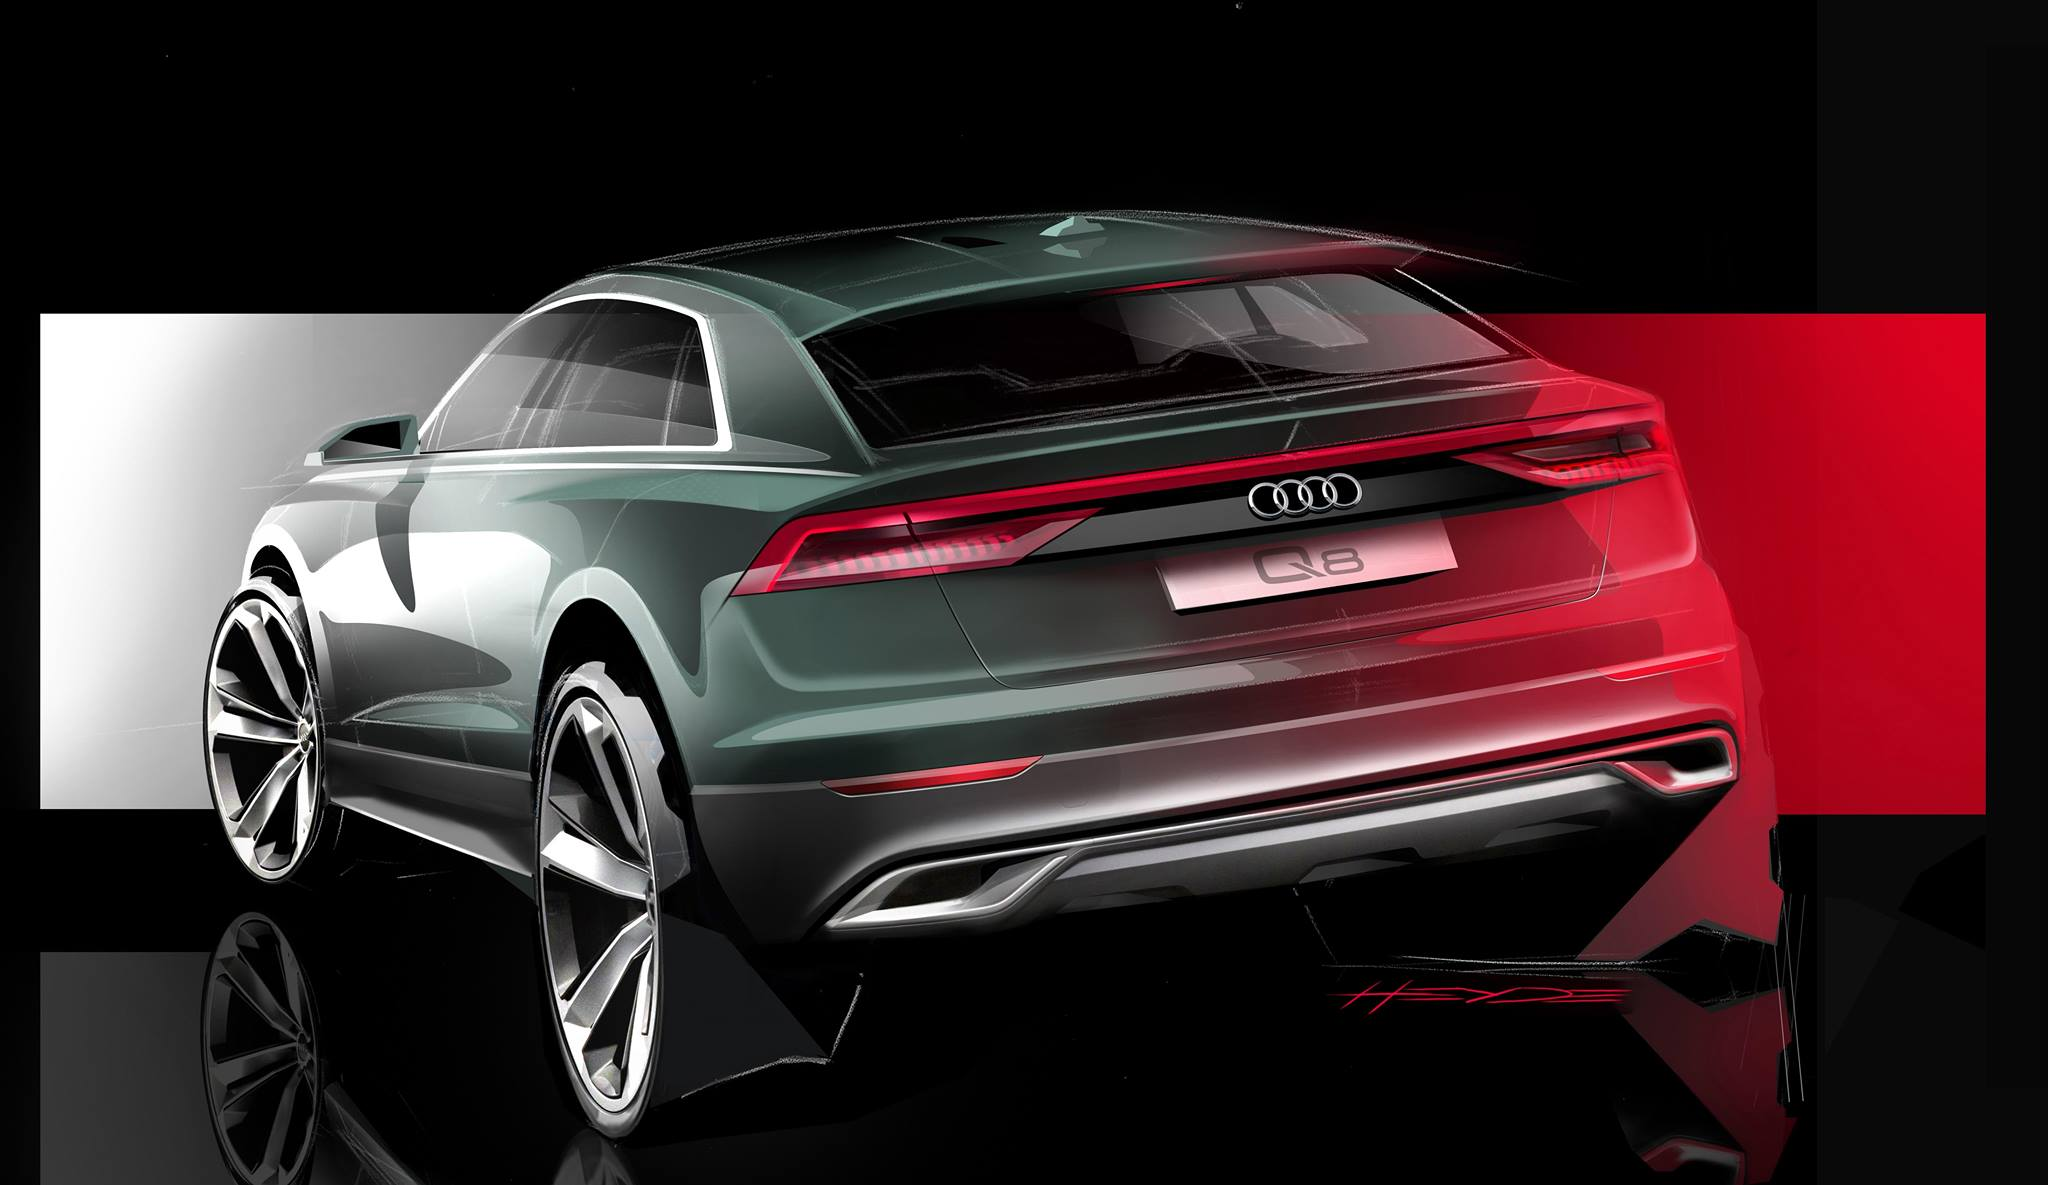 Audi Q8 Concept: Specs, Production Version >> Audi Teases The Q8 With New Rendering And Video Series